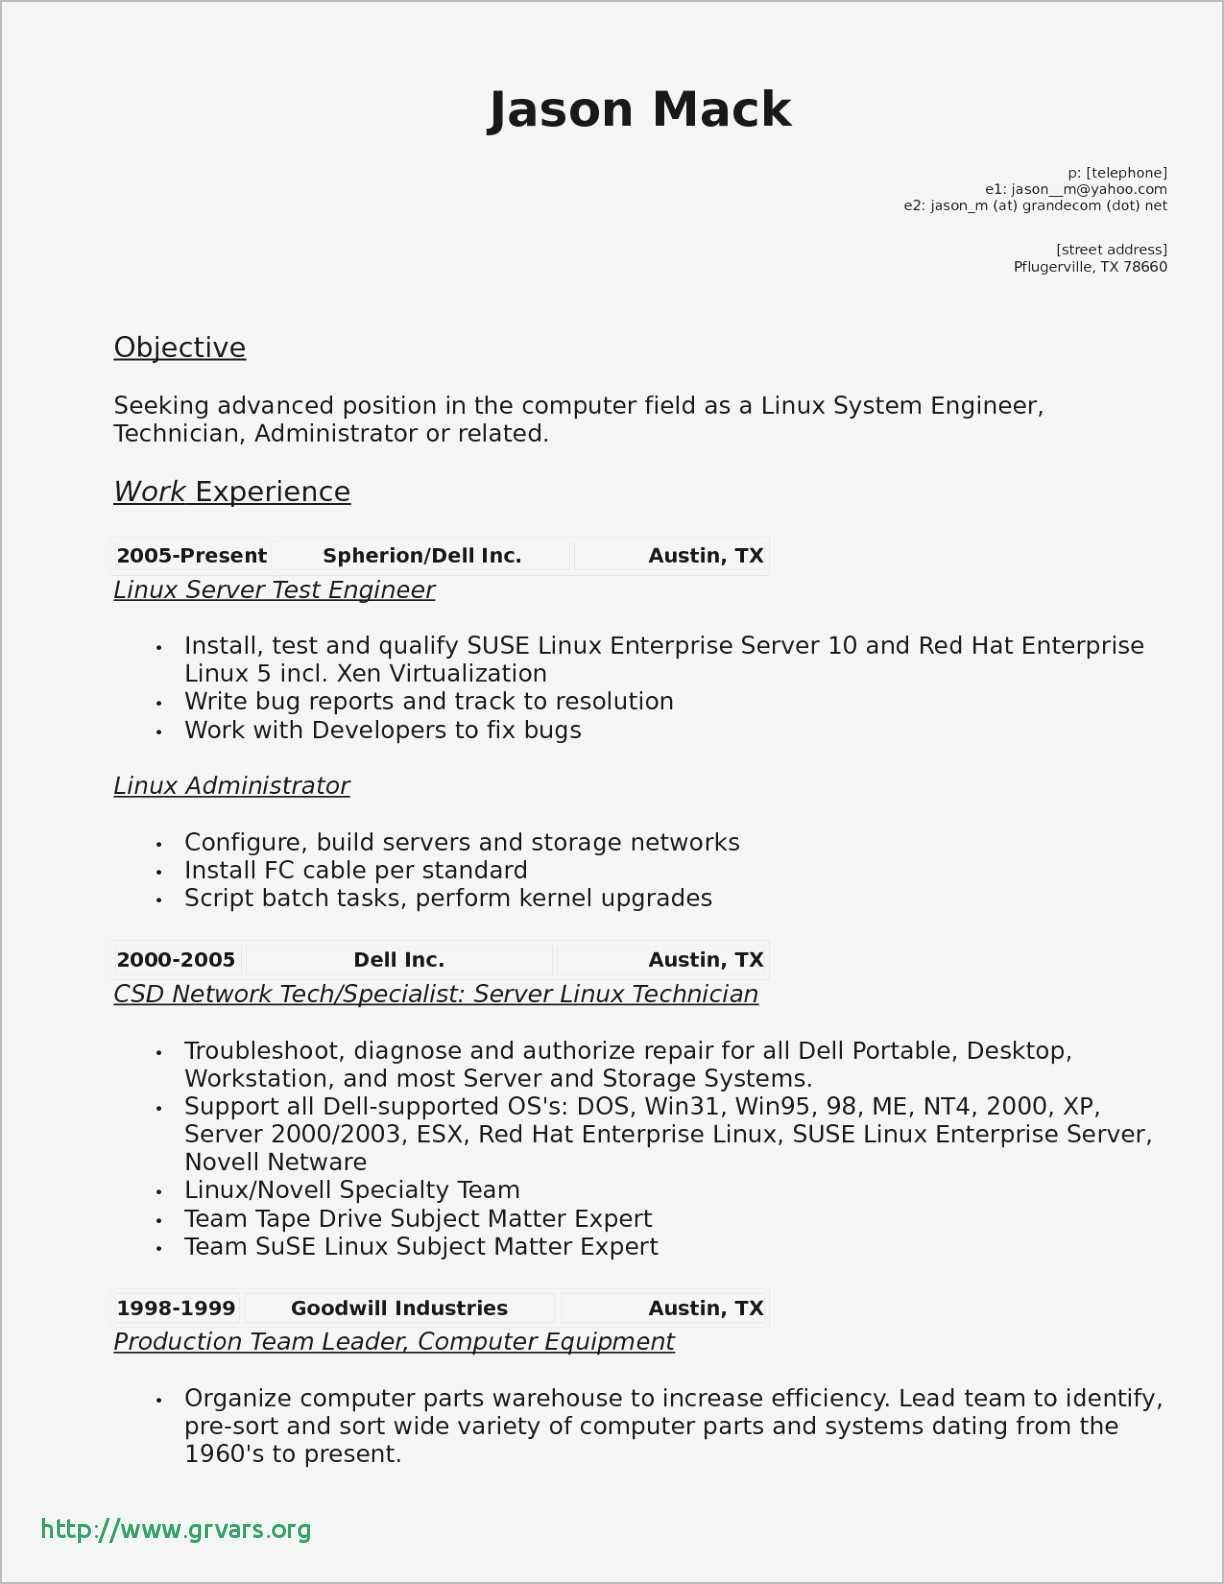 Job Analysis Template Excellent format S Floor Tech Job Description Unique Pharmacy Tech